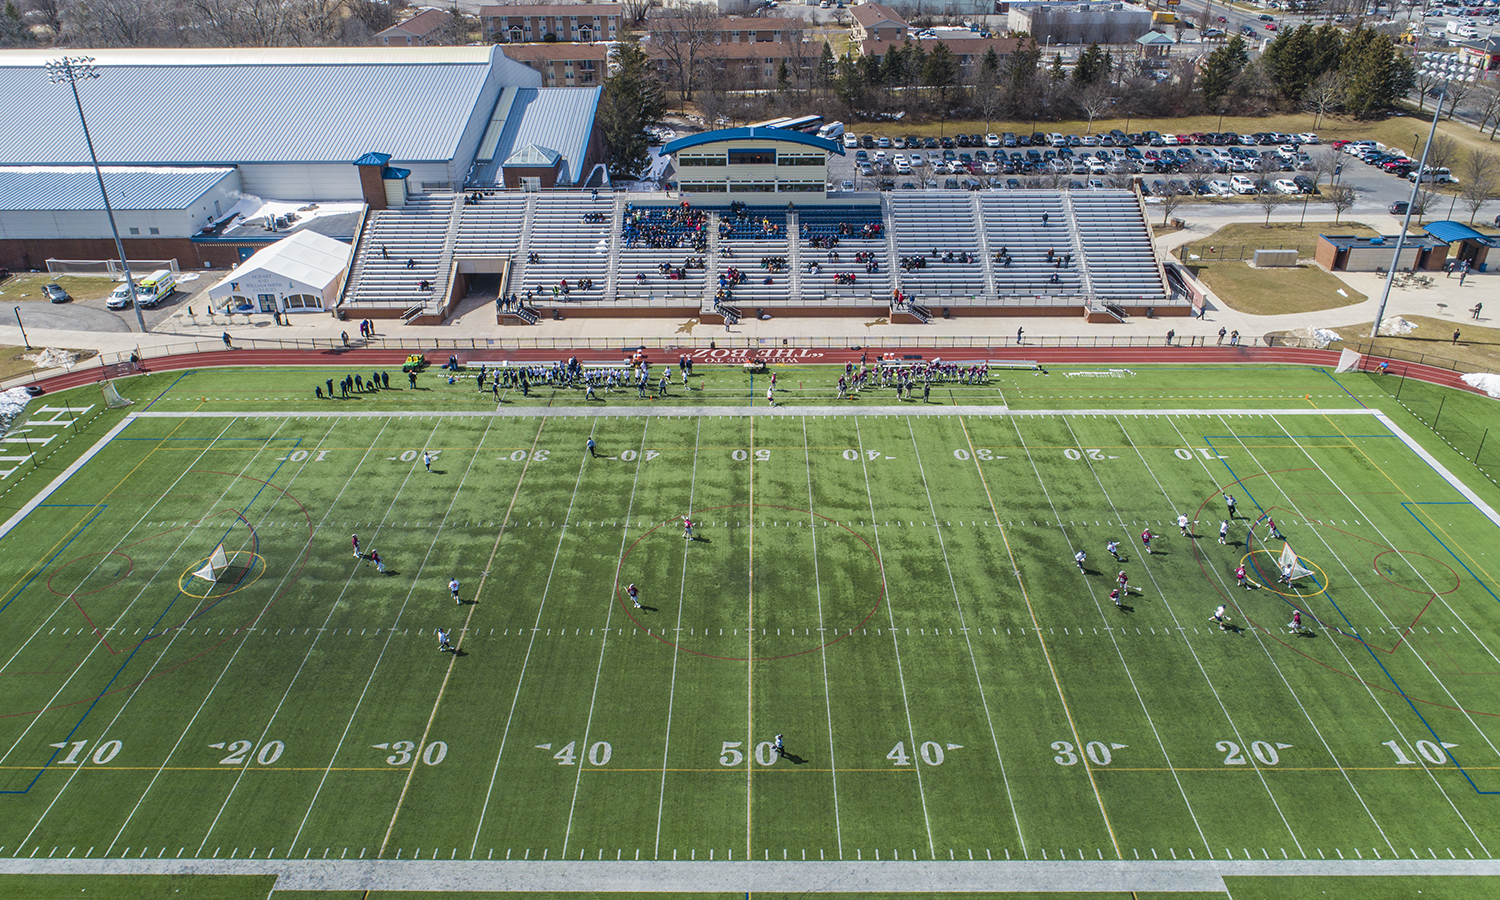 An aerial view of Hobart Lacrosse's game against St. Joseph's University.